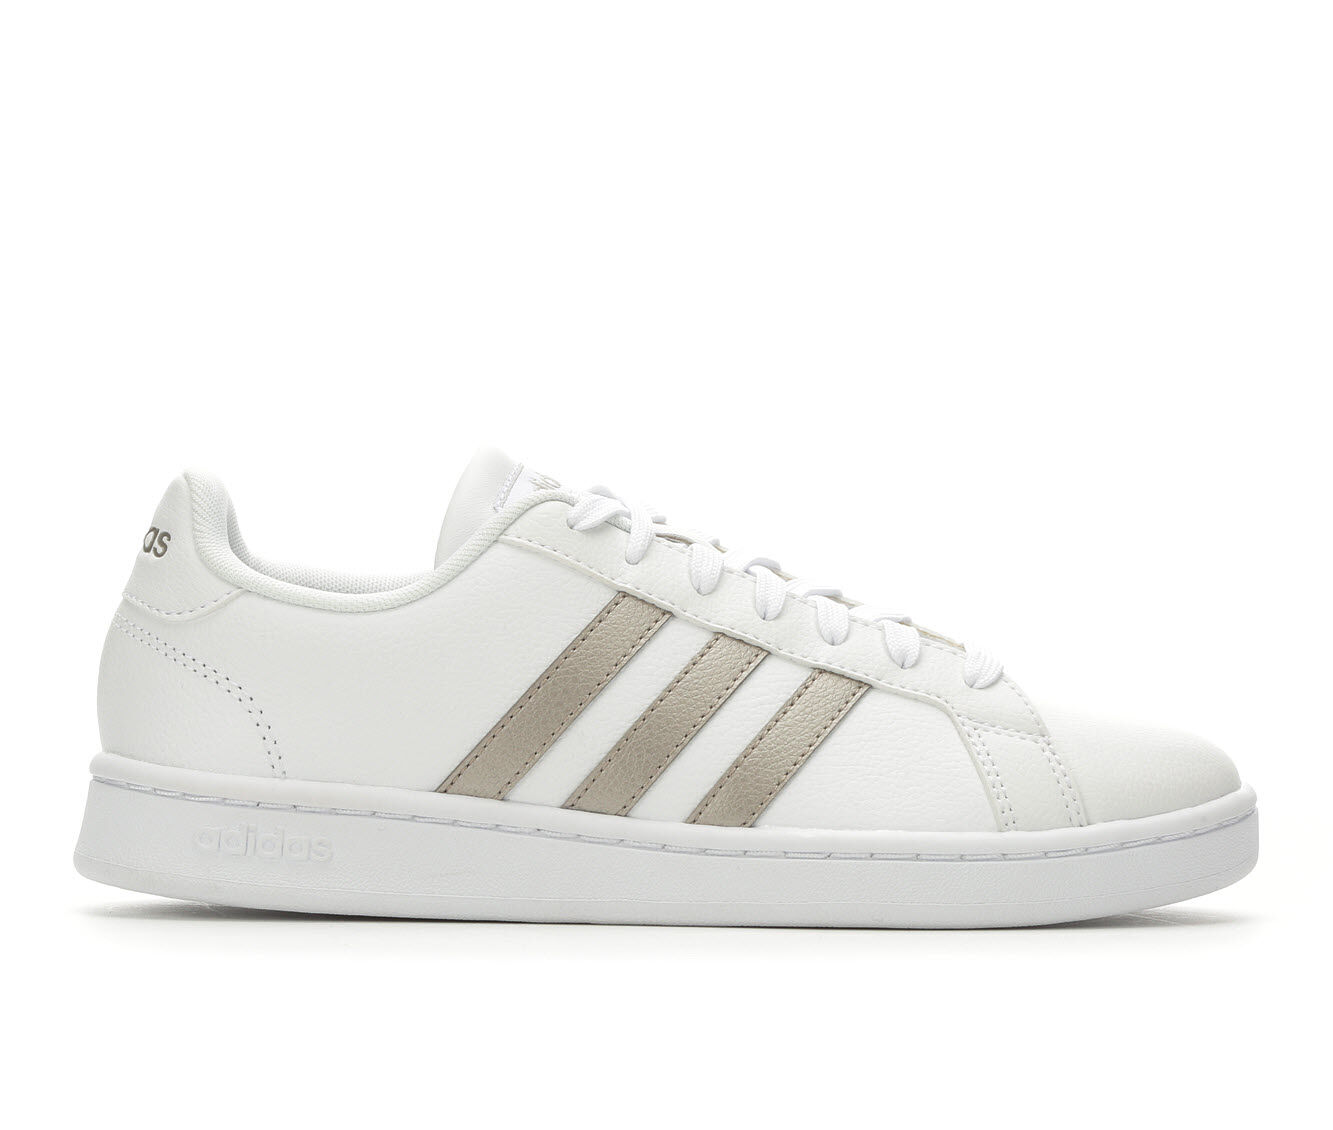 Sale Low Price Women's Adidas Grand Court Basketball Shoes White/Silver